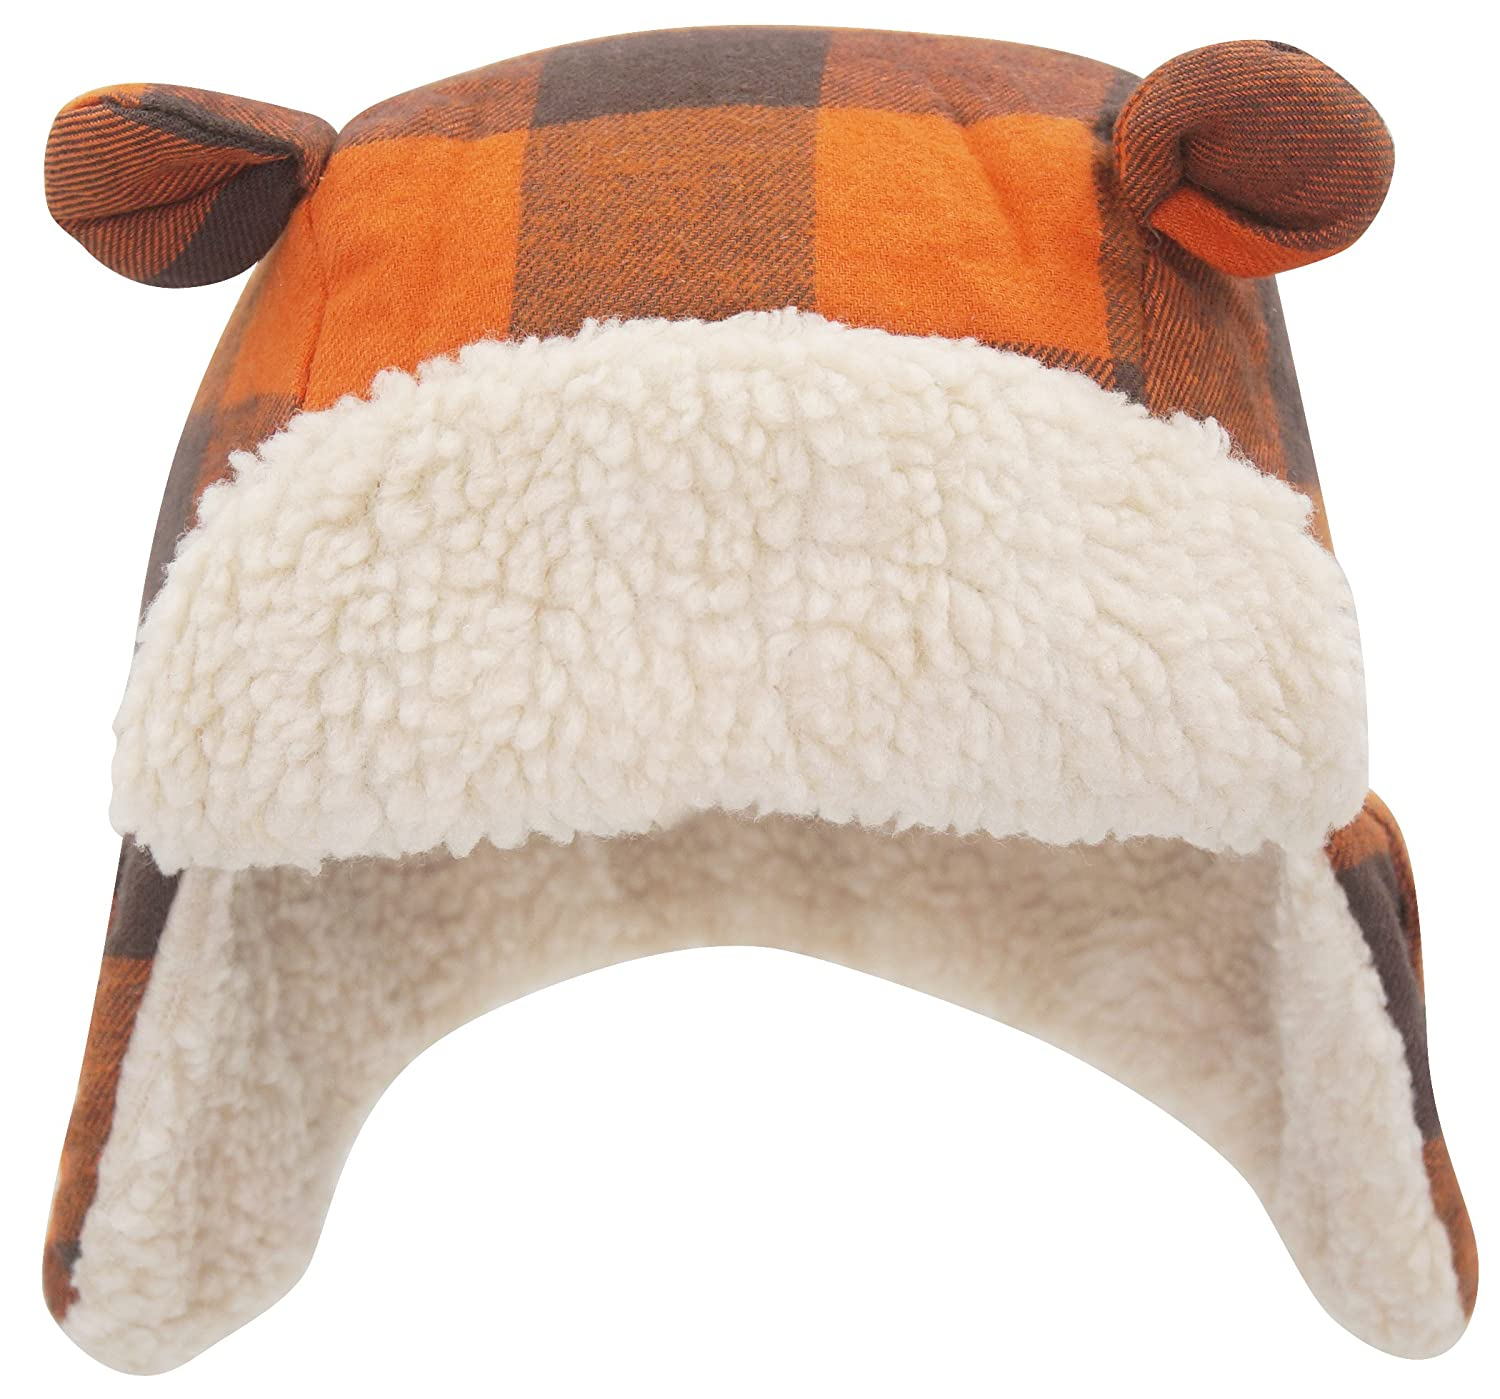 Baby Toddler Kids Orange Plaid Trapper Hat Aviator Winter Warm Earflap Cap Sherpa Hat TotMore